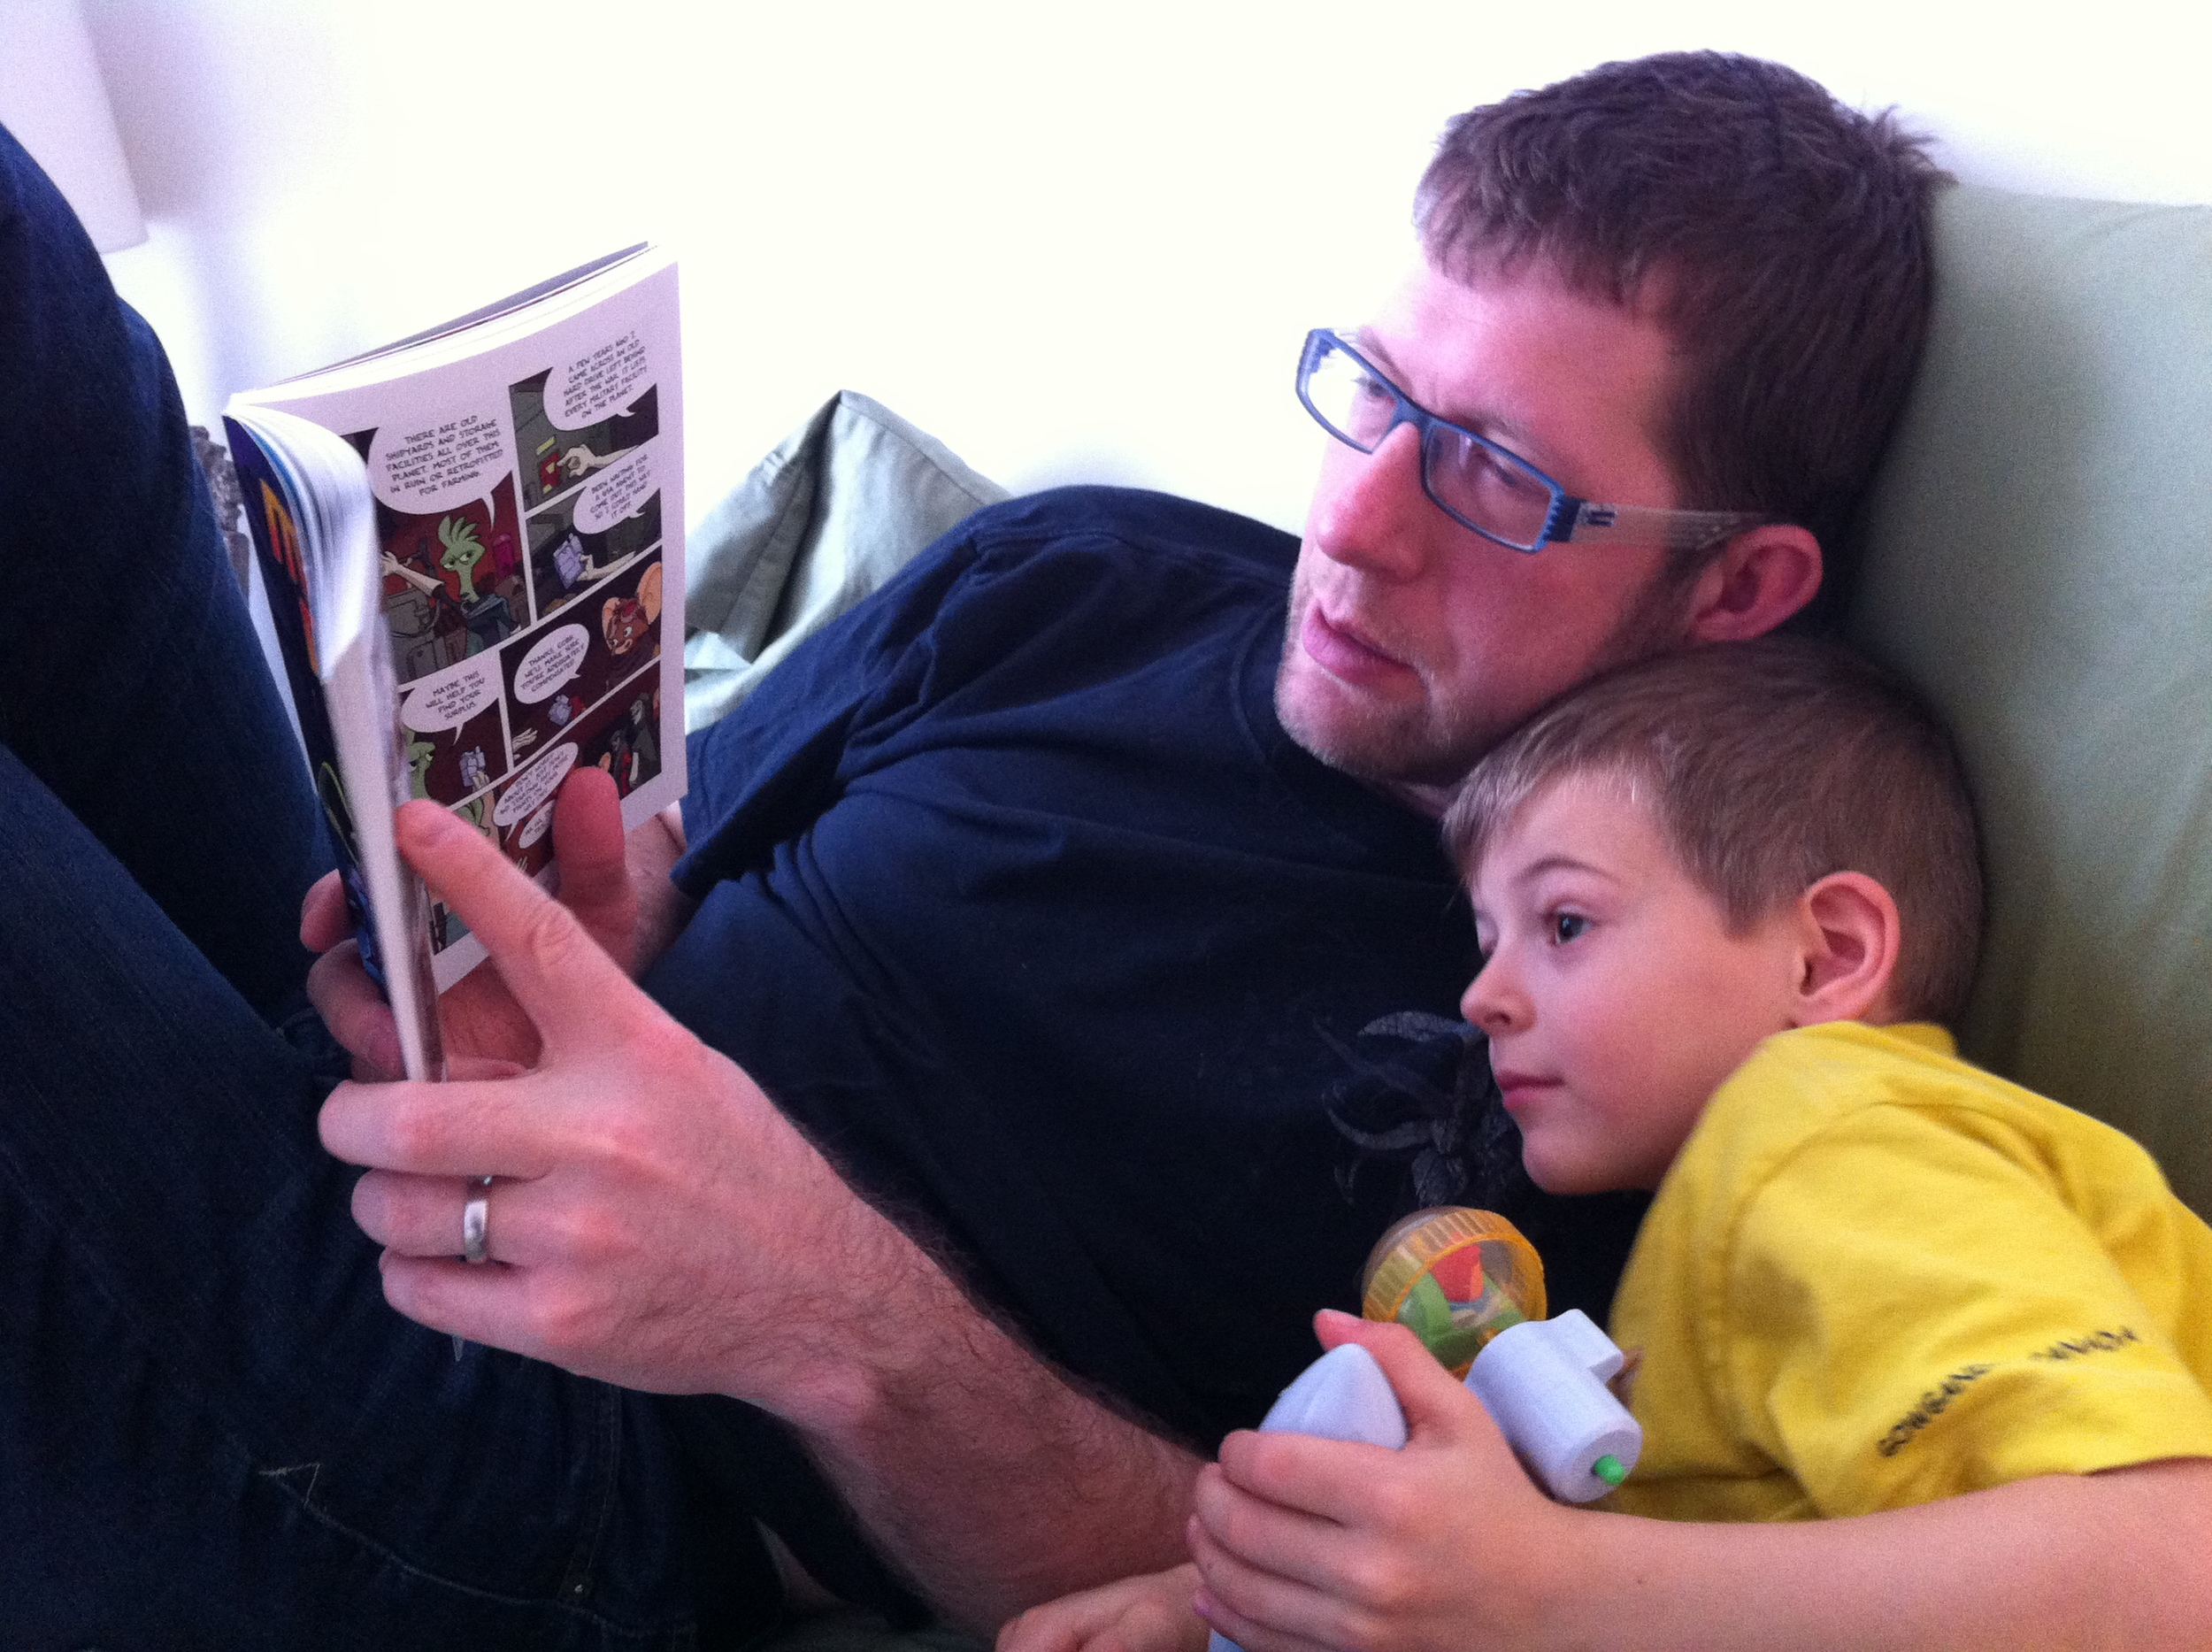 My boys snuggled up and reading Missile Mouse comics.